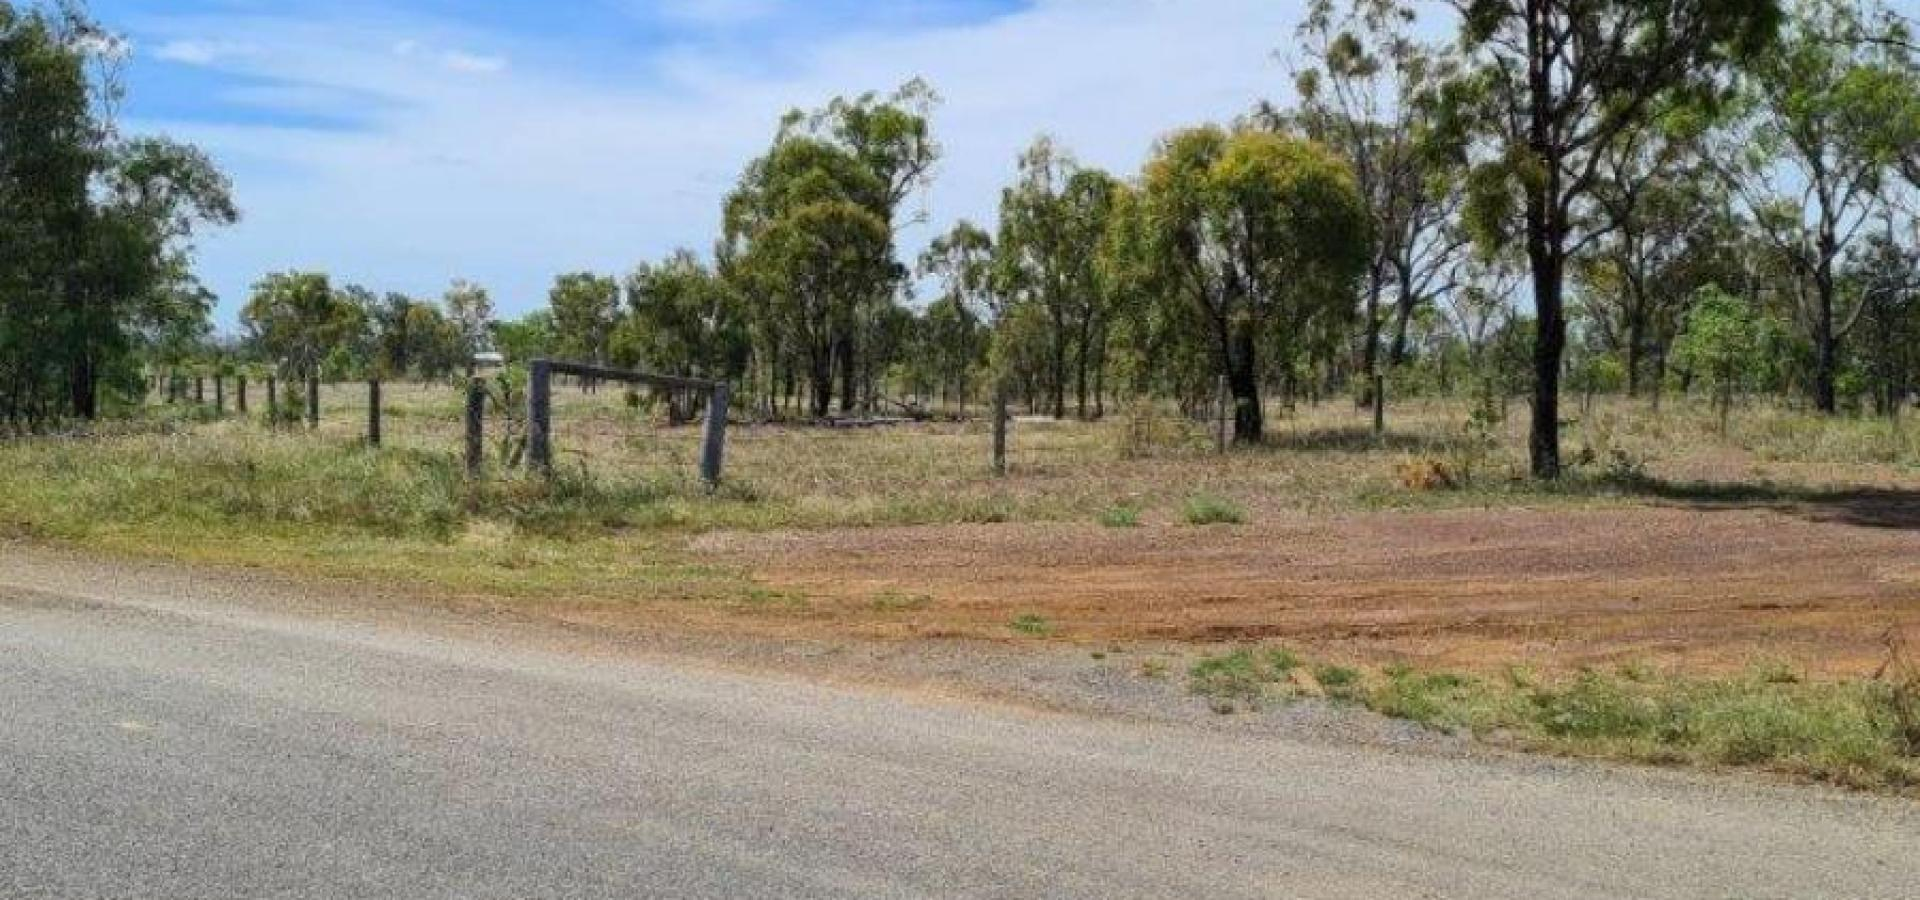 Highly Sought After 7.195 Hectare Rural block at Alton Downs - Close to Rockhampton